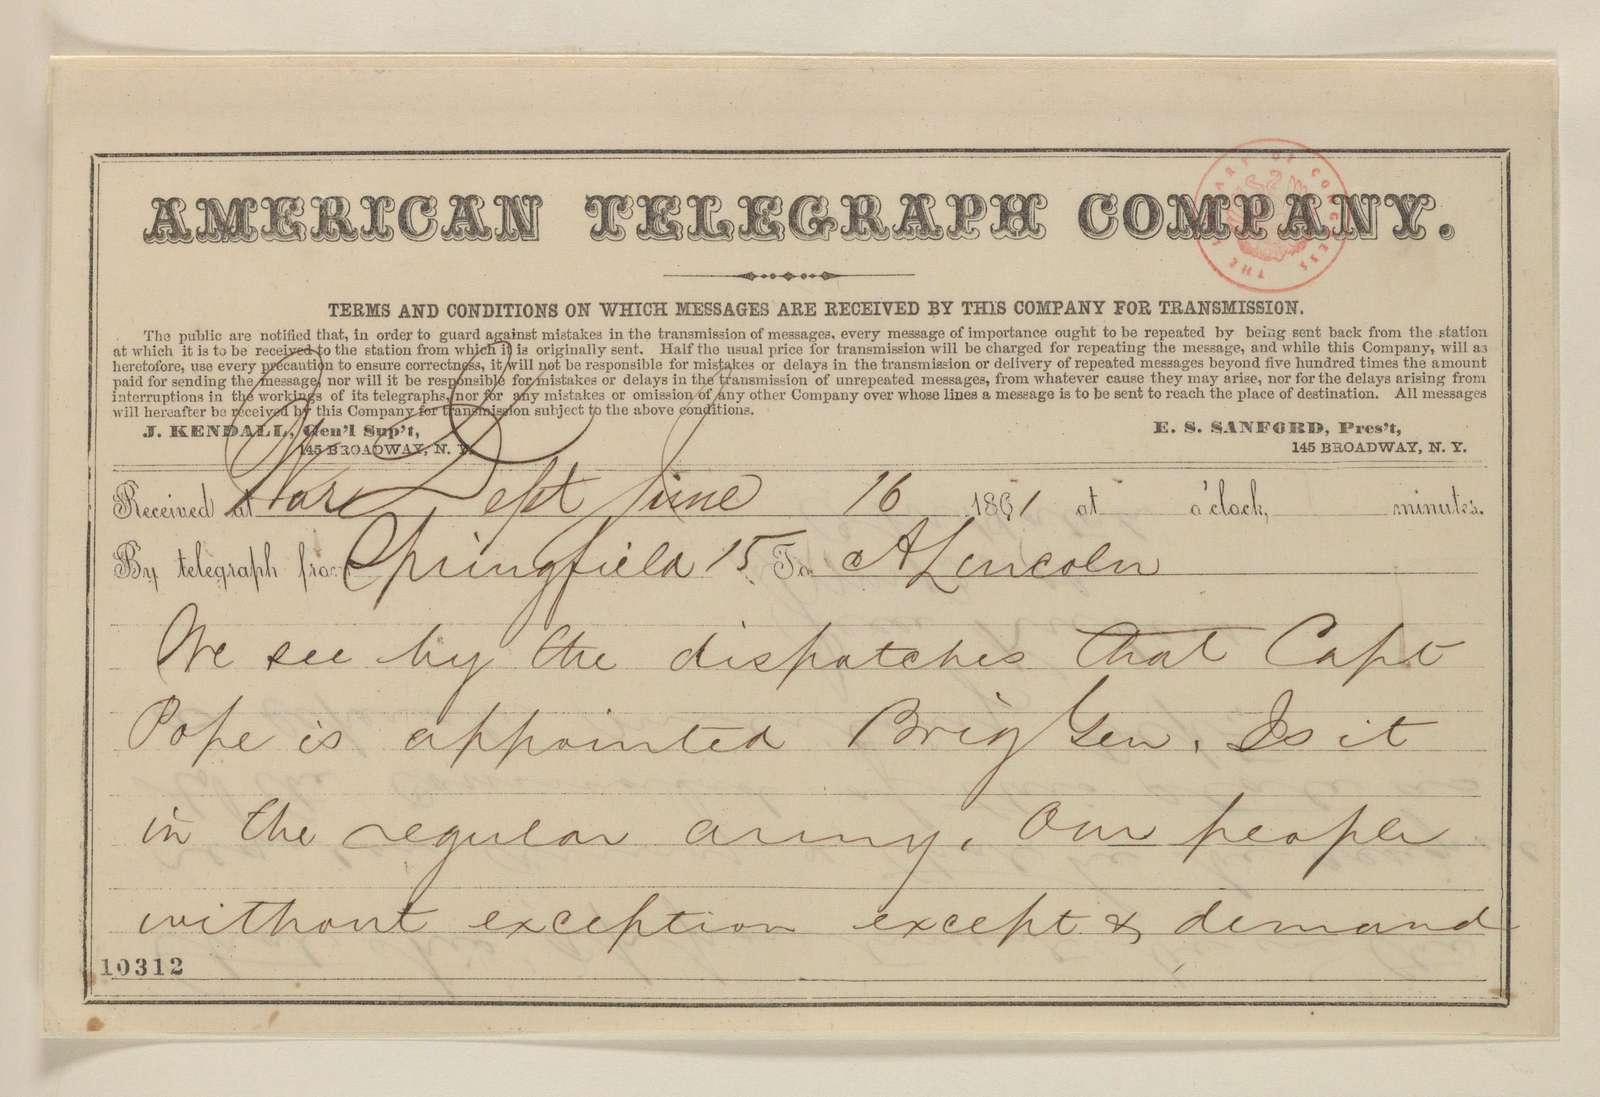 Abraham Lincoln papers: Series 1. General Correspondence. 1833-1916: William Butler, Jesse K. Dubois, and Ozias M. Hatch to Abraham Lincoln, Sunday, June 16, 1861 (Telegram regarding John Pope's promotion)